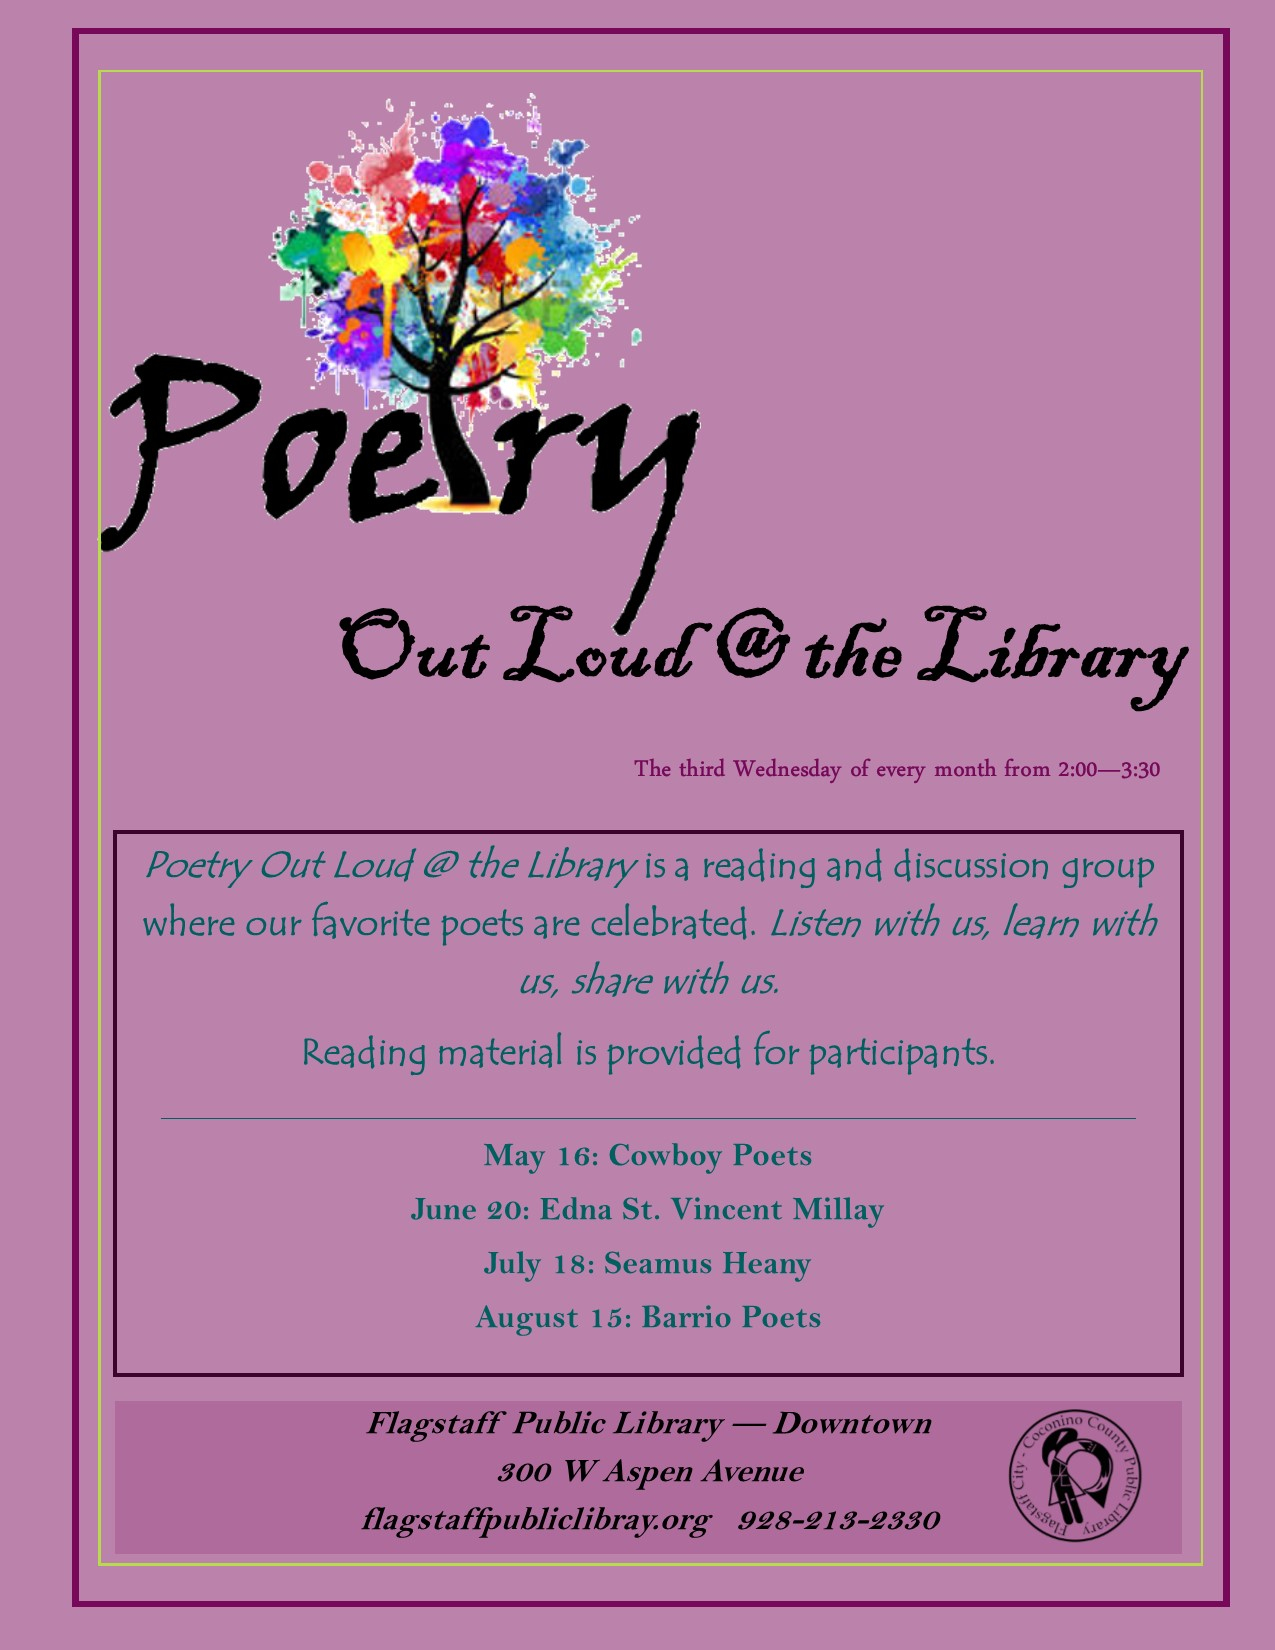 Poetry Out Loud @ the Library